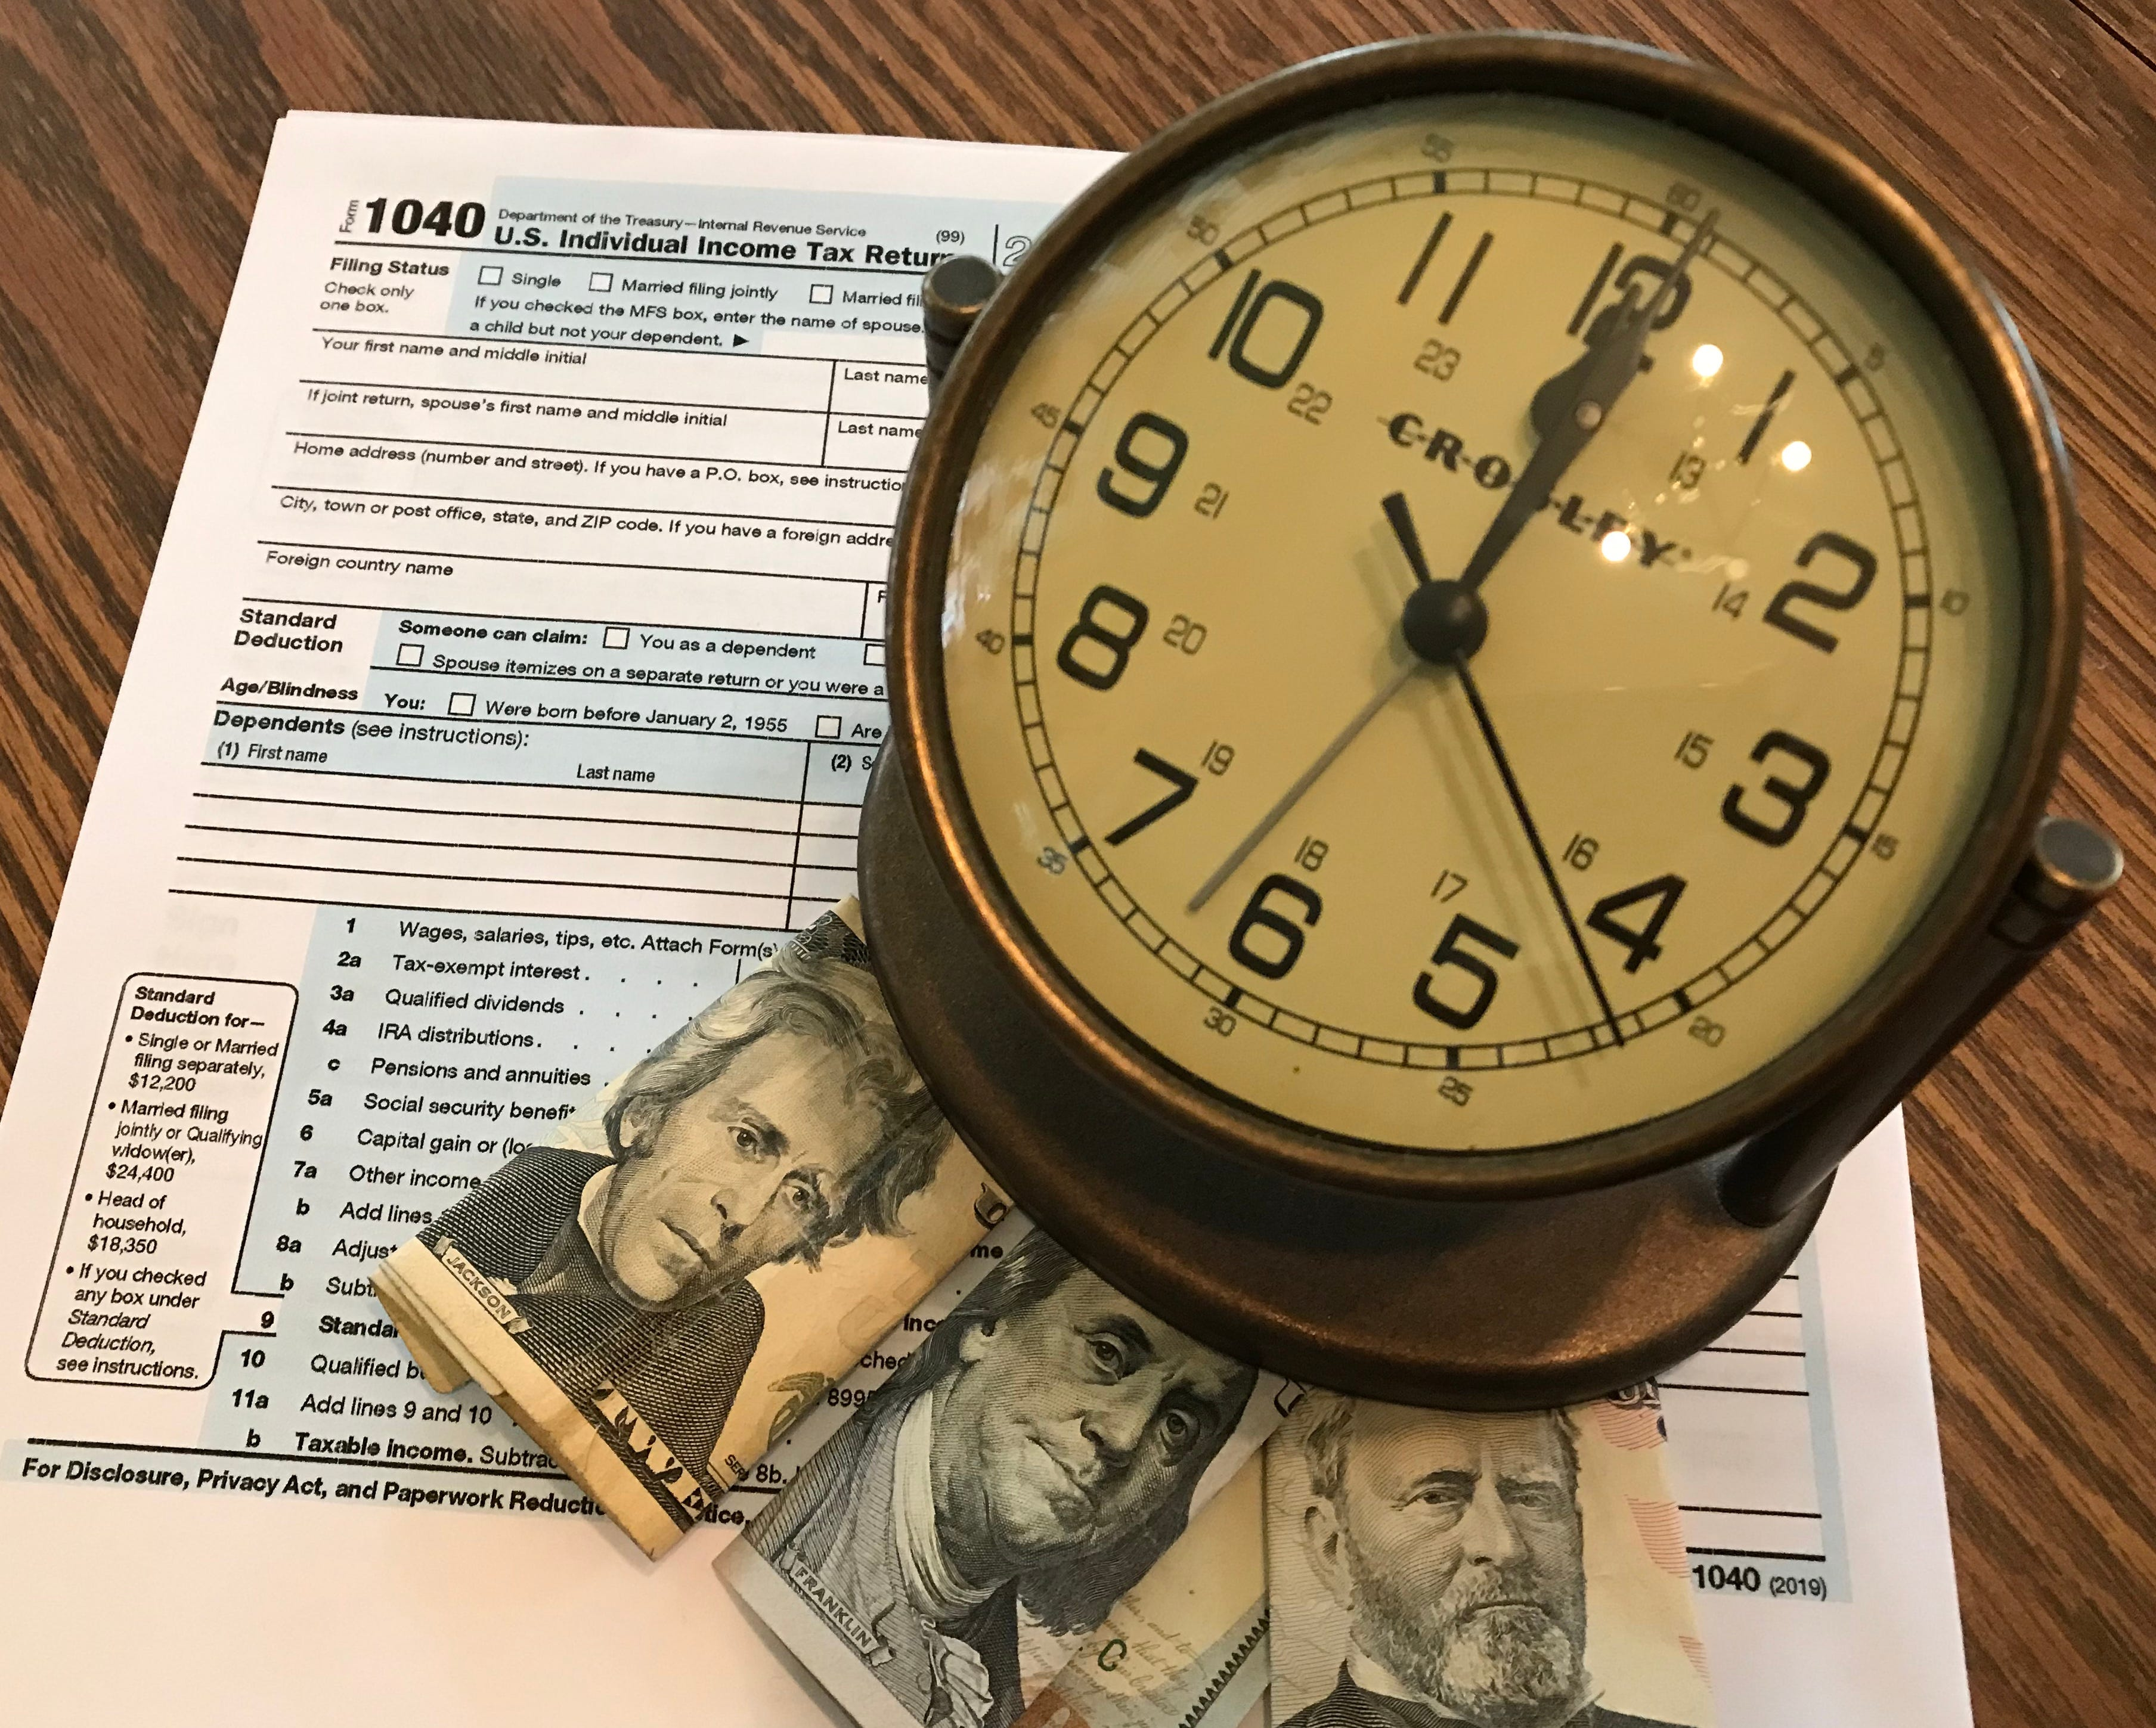 Wait, it's April 15: When are my income taxes due?